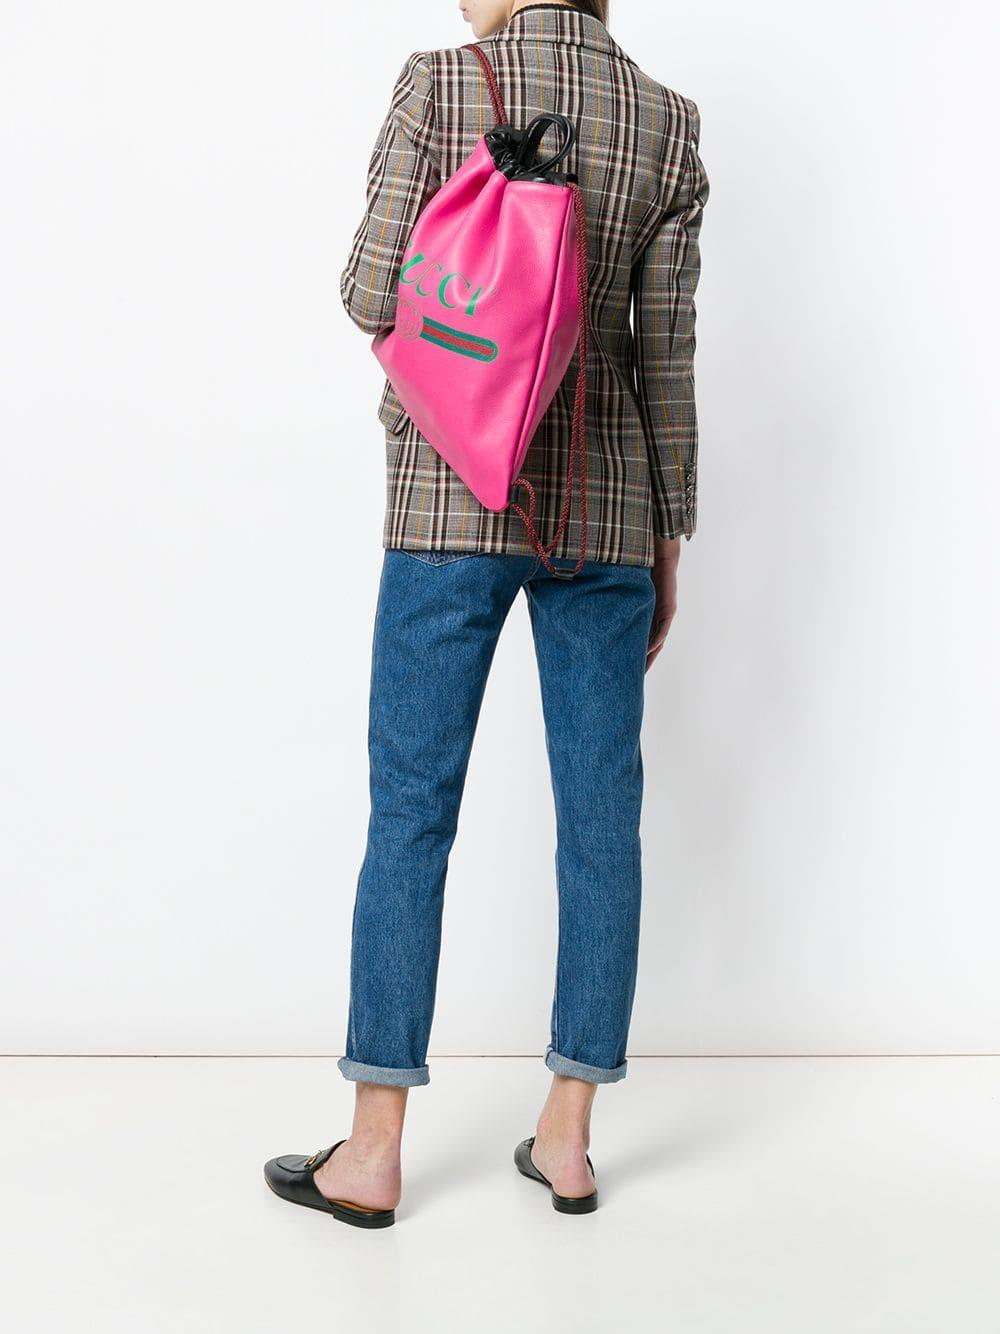 Lyst - Gucci Logo Printed Backpack in Pink de7ab53682